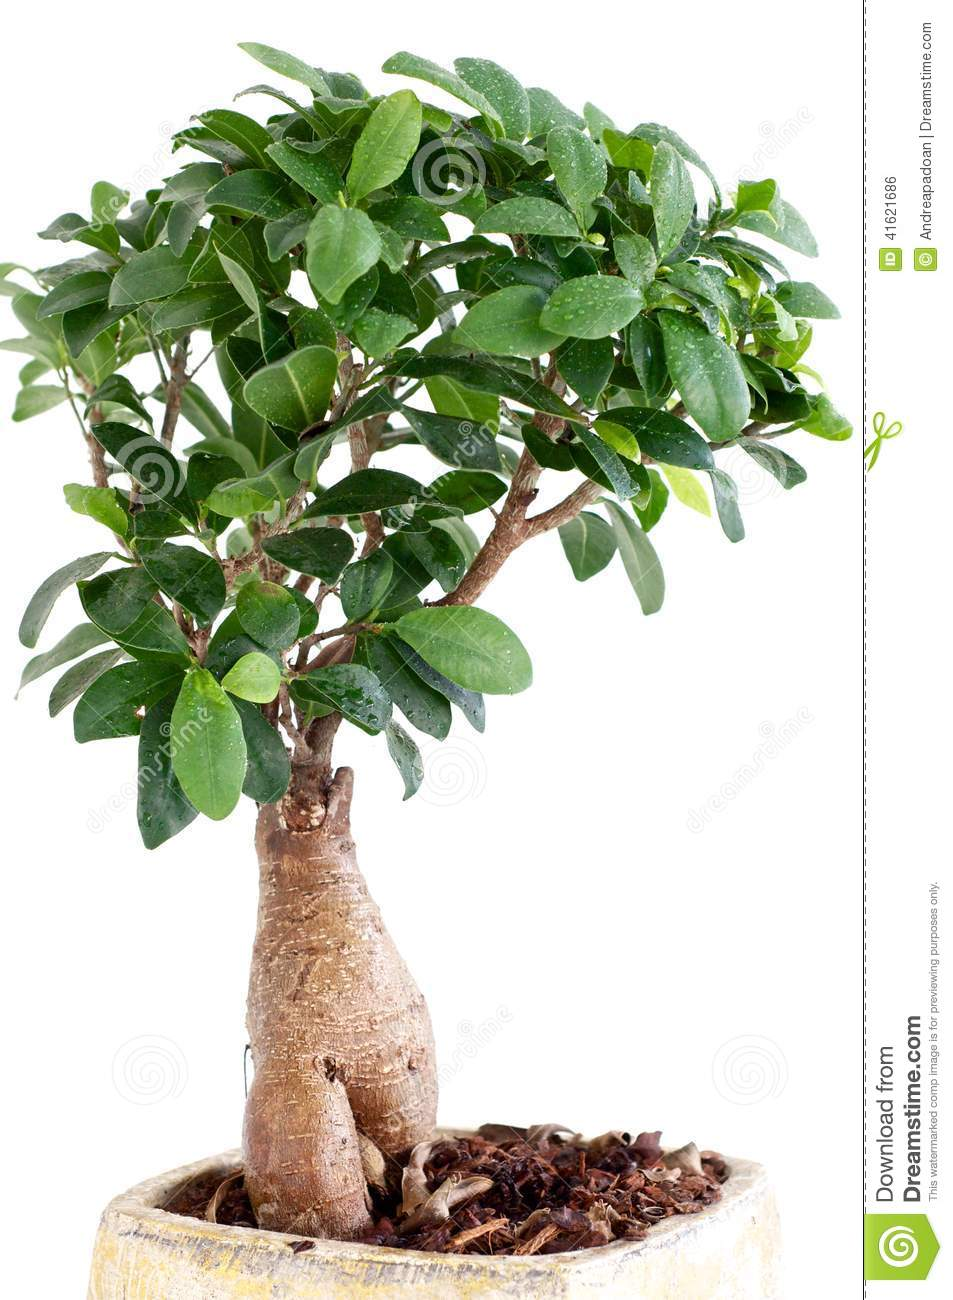 Ficus Ginseng Bonsai Ficus Ginseng Stock Photo Image Of Ficus Leaf Flower 41621686